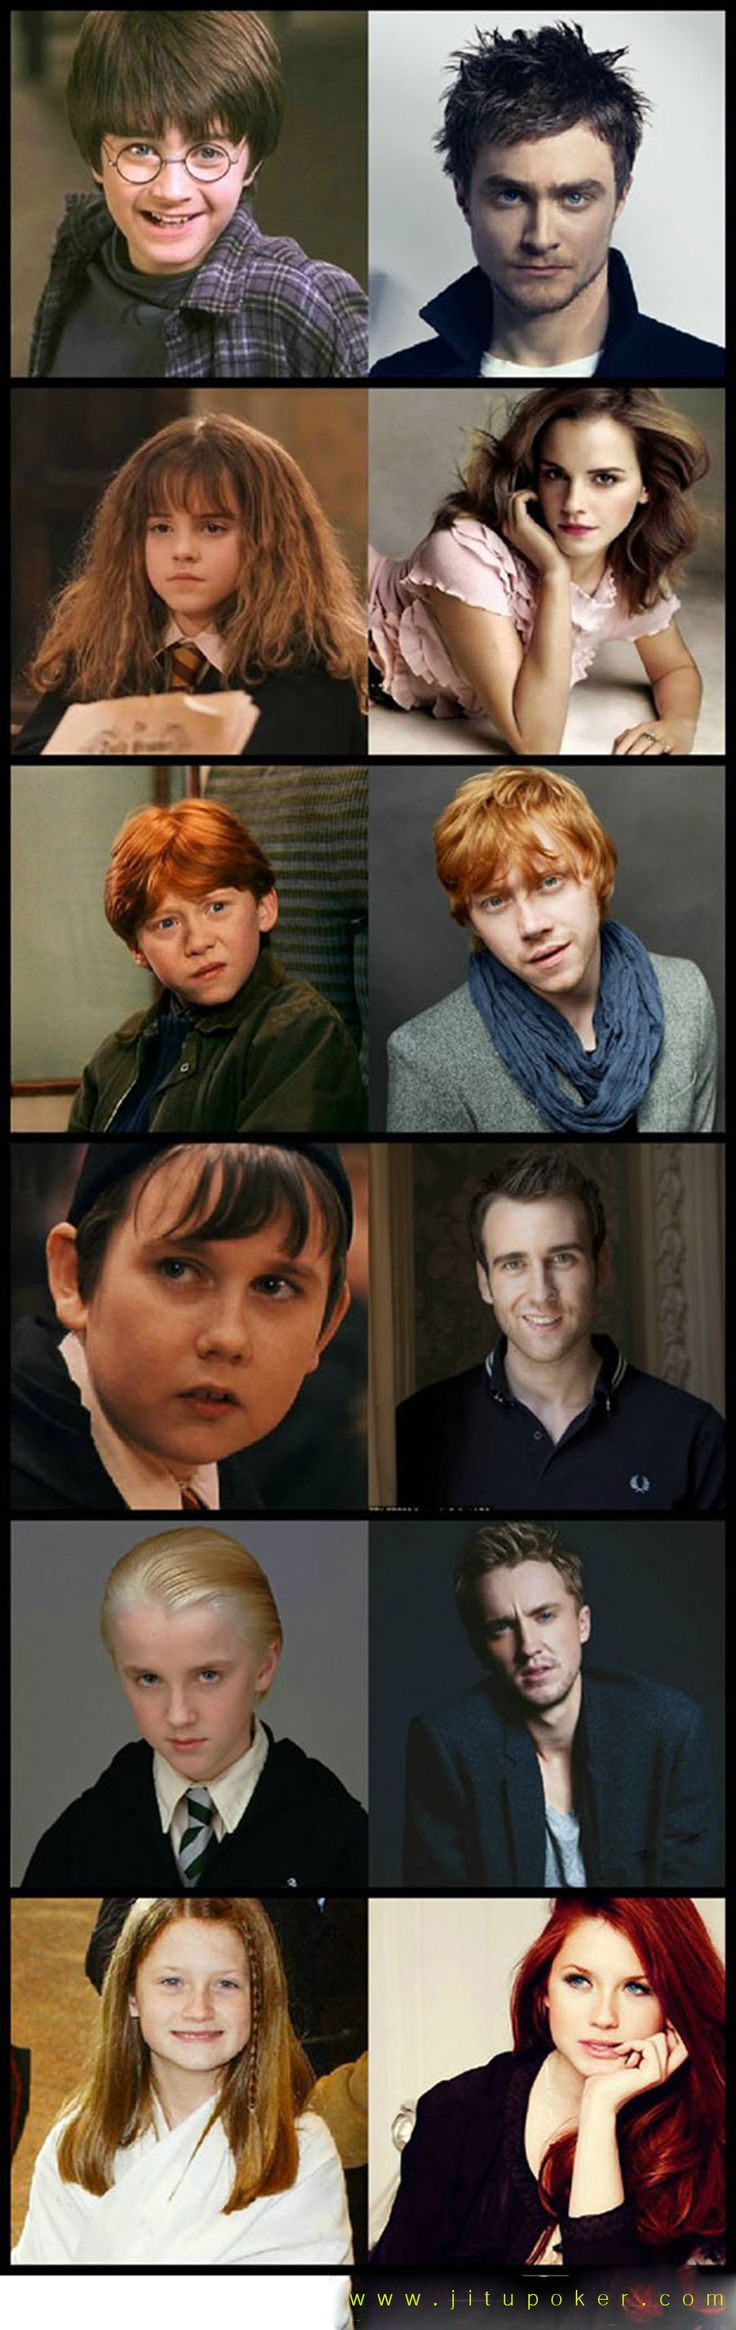 Harry potter meranjak dewasa #harrypotter #gambarlucu #hollywood #magic #sihir #anakmuda #favoritecinema #handsome #top #agenjudi